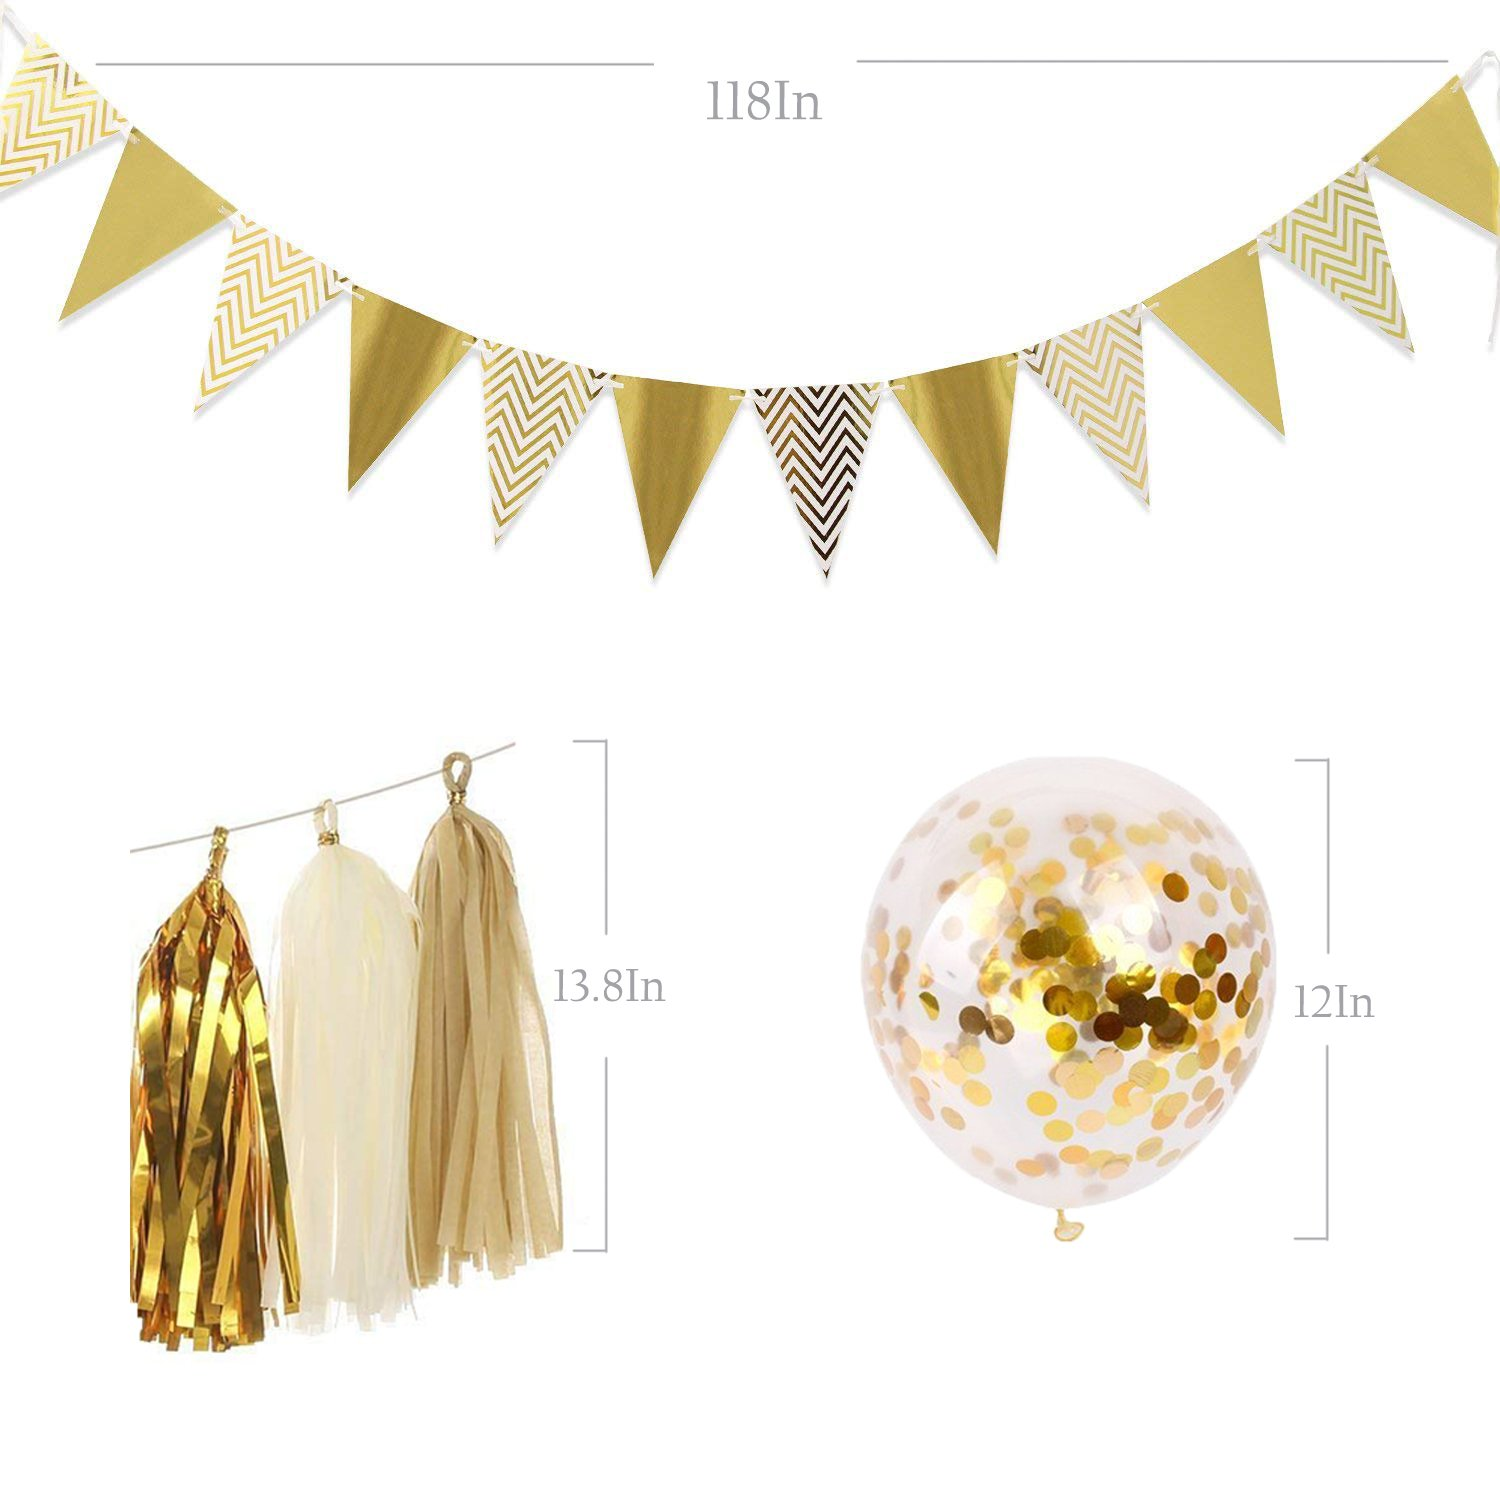 Gold Party Decorations 8 Pcs Paper Fan Flowers 20 Pcs Confetti balloons Pennant Banner 15 pcs Tissue Paper Tassels Garland Birthday Party Supplies for Wedding Baby Shower Outdoor Wall Decorations by RSMY (Image #5)